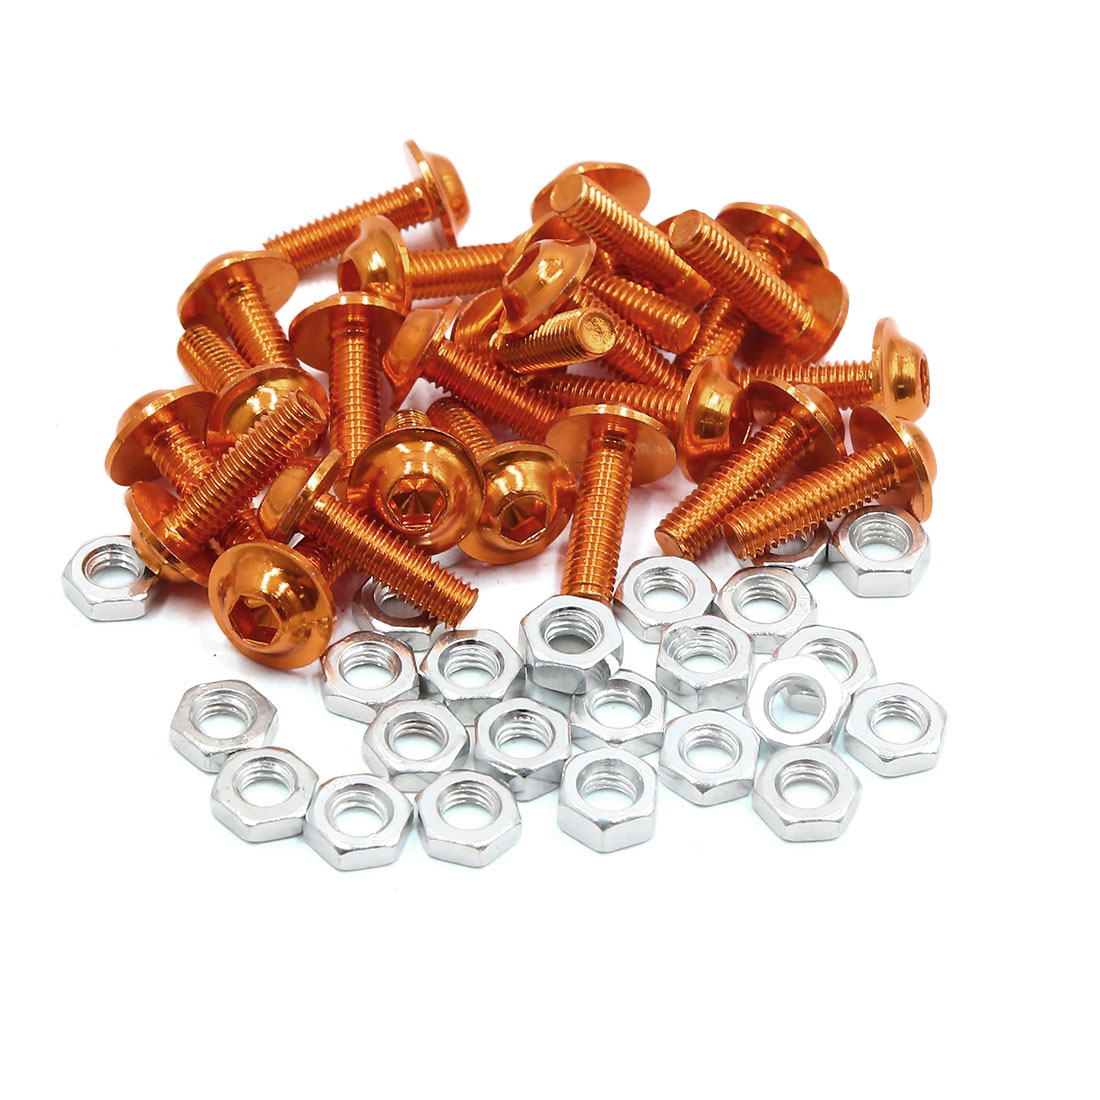 25pcs M6 Orange Aluminum Alloy Hex Socket Head Motorcycle Bolts Screws Nuts